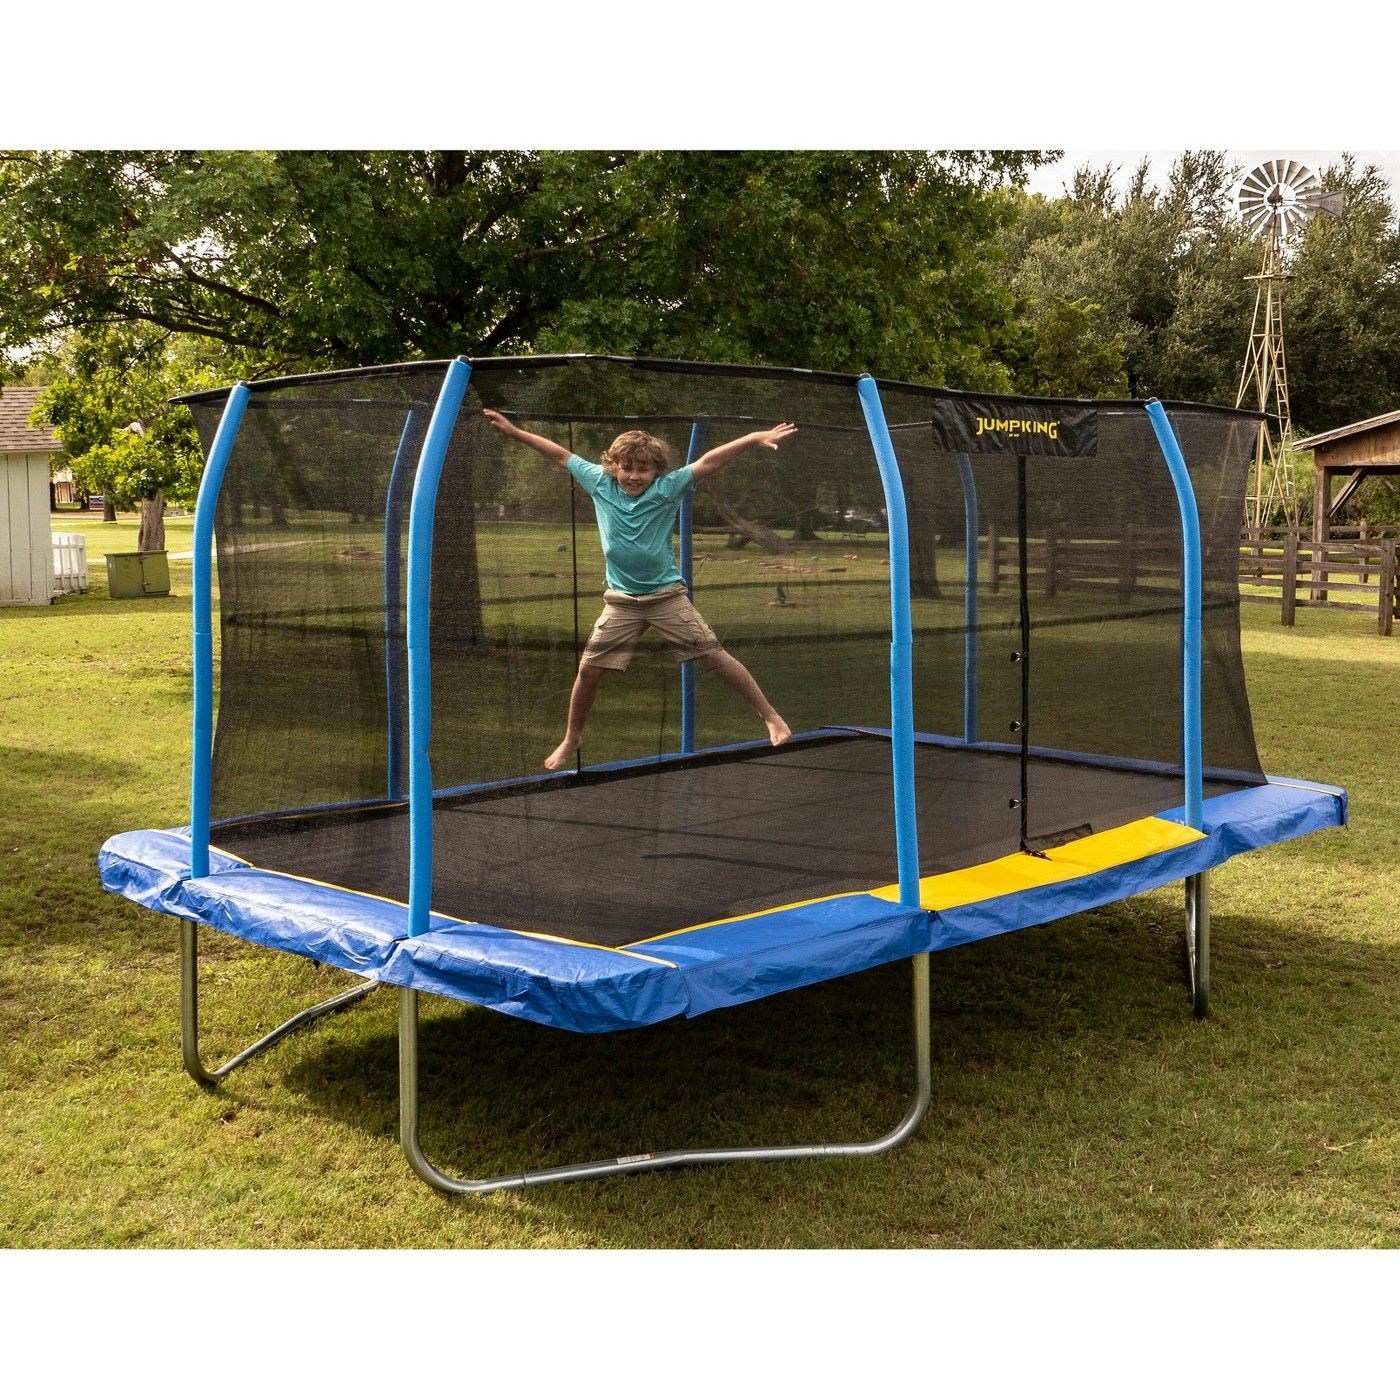 Jumpking 12 X 17 Foot Large Rectangular Trampoline With Safety Net